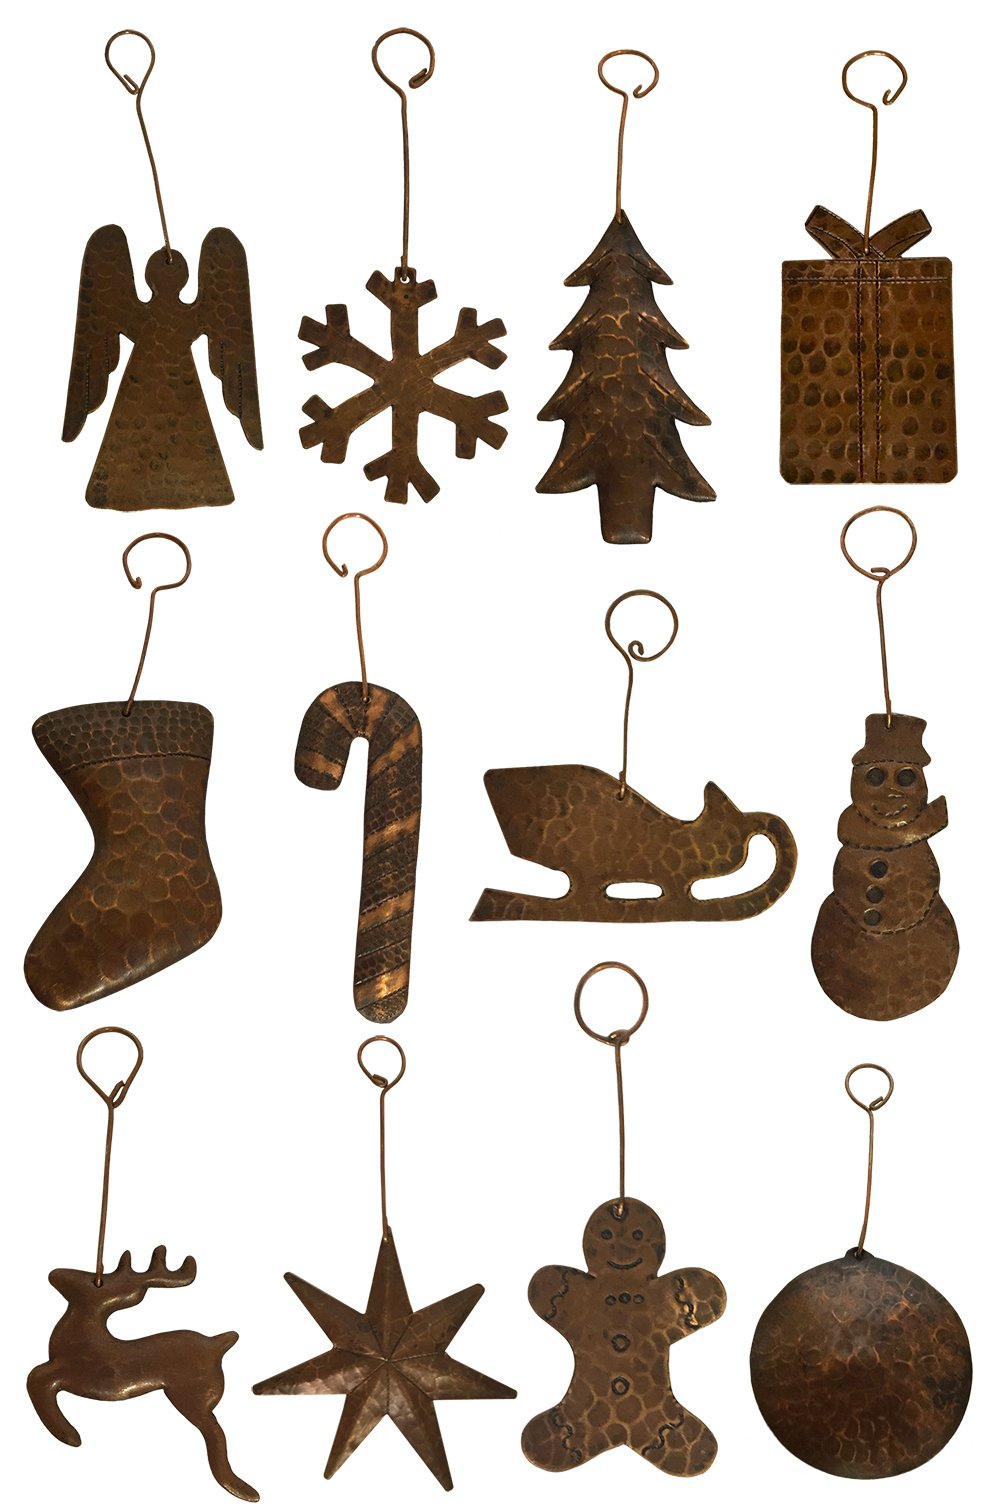 Hand Hammered Copper Christmas Ornaments - Complete Assortment of 12